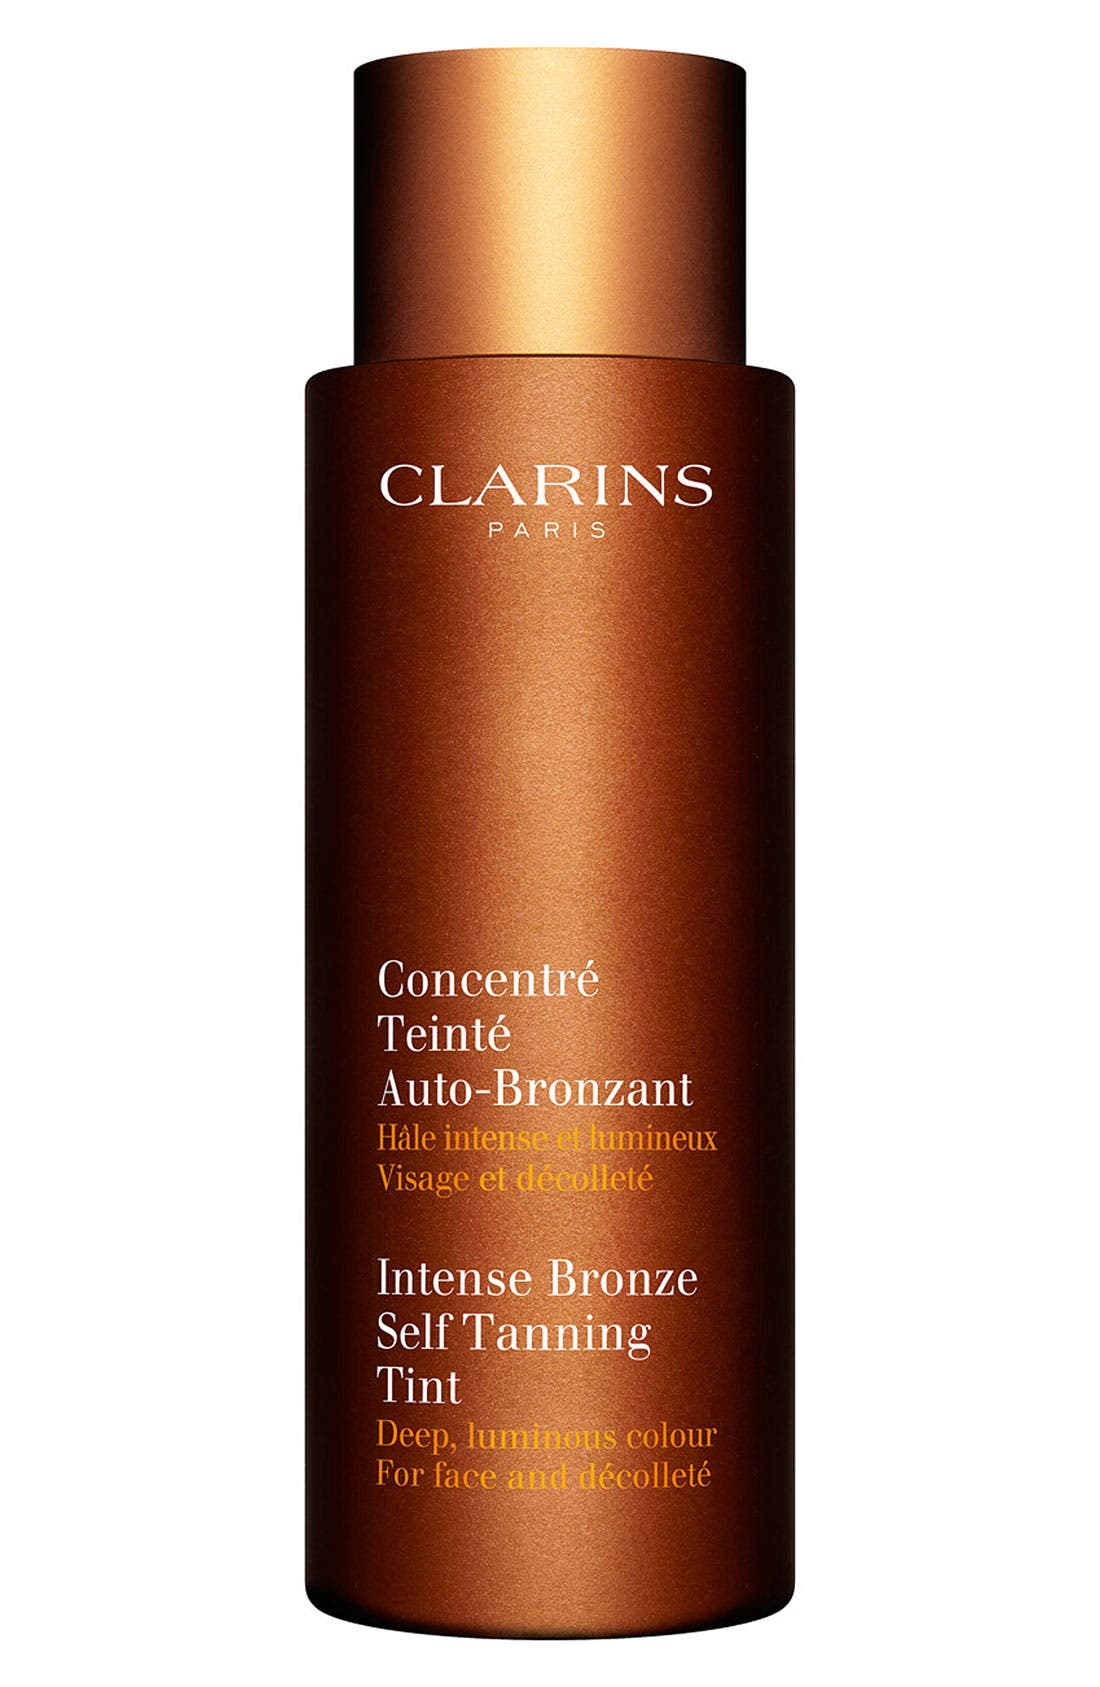 Clarins Intense Bronze Self Tanning Tint